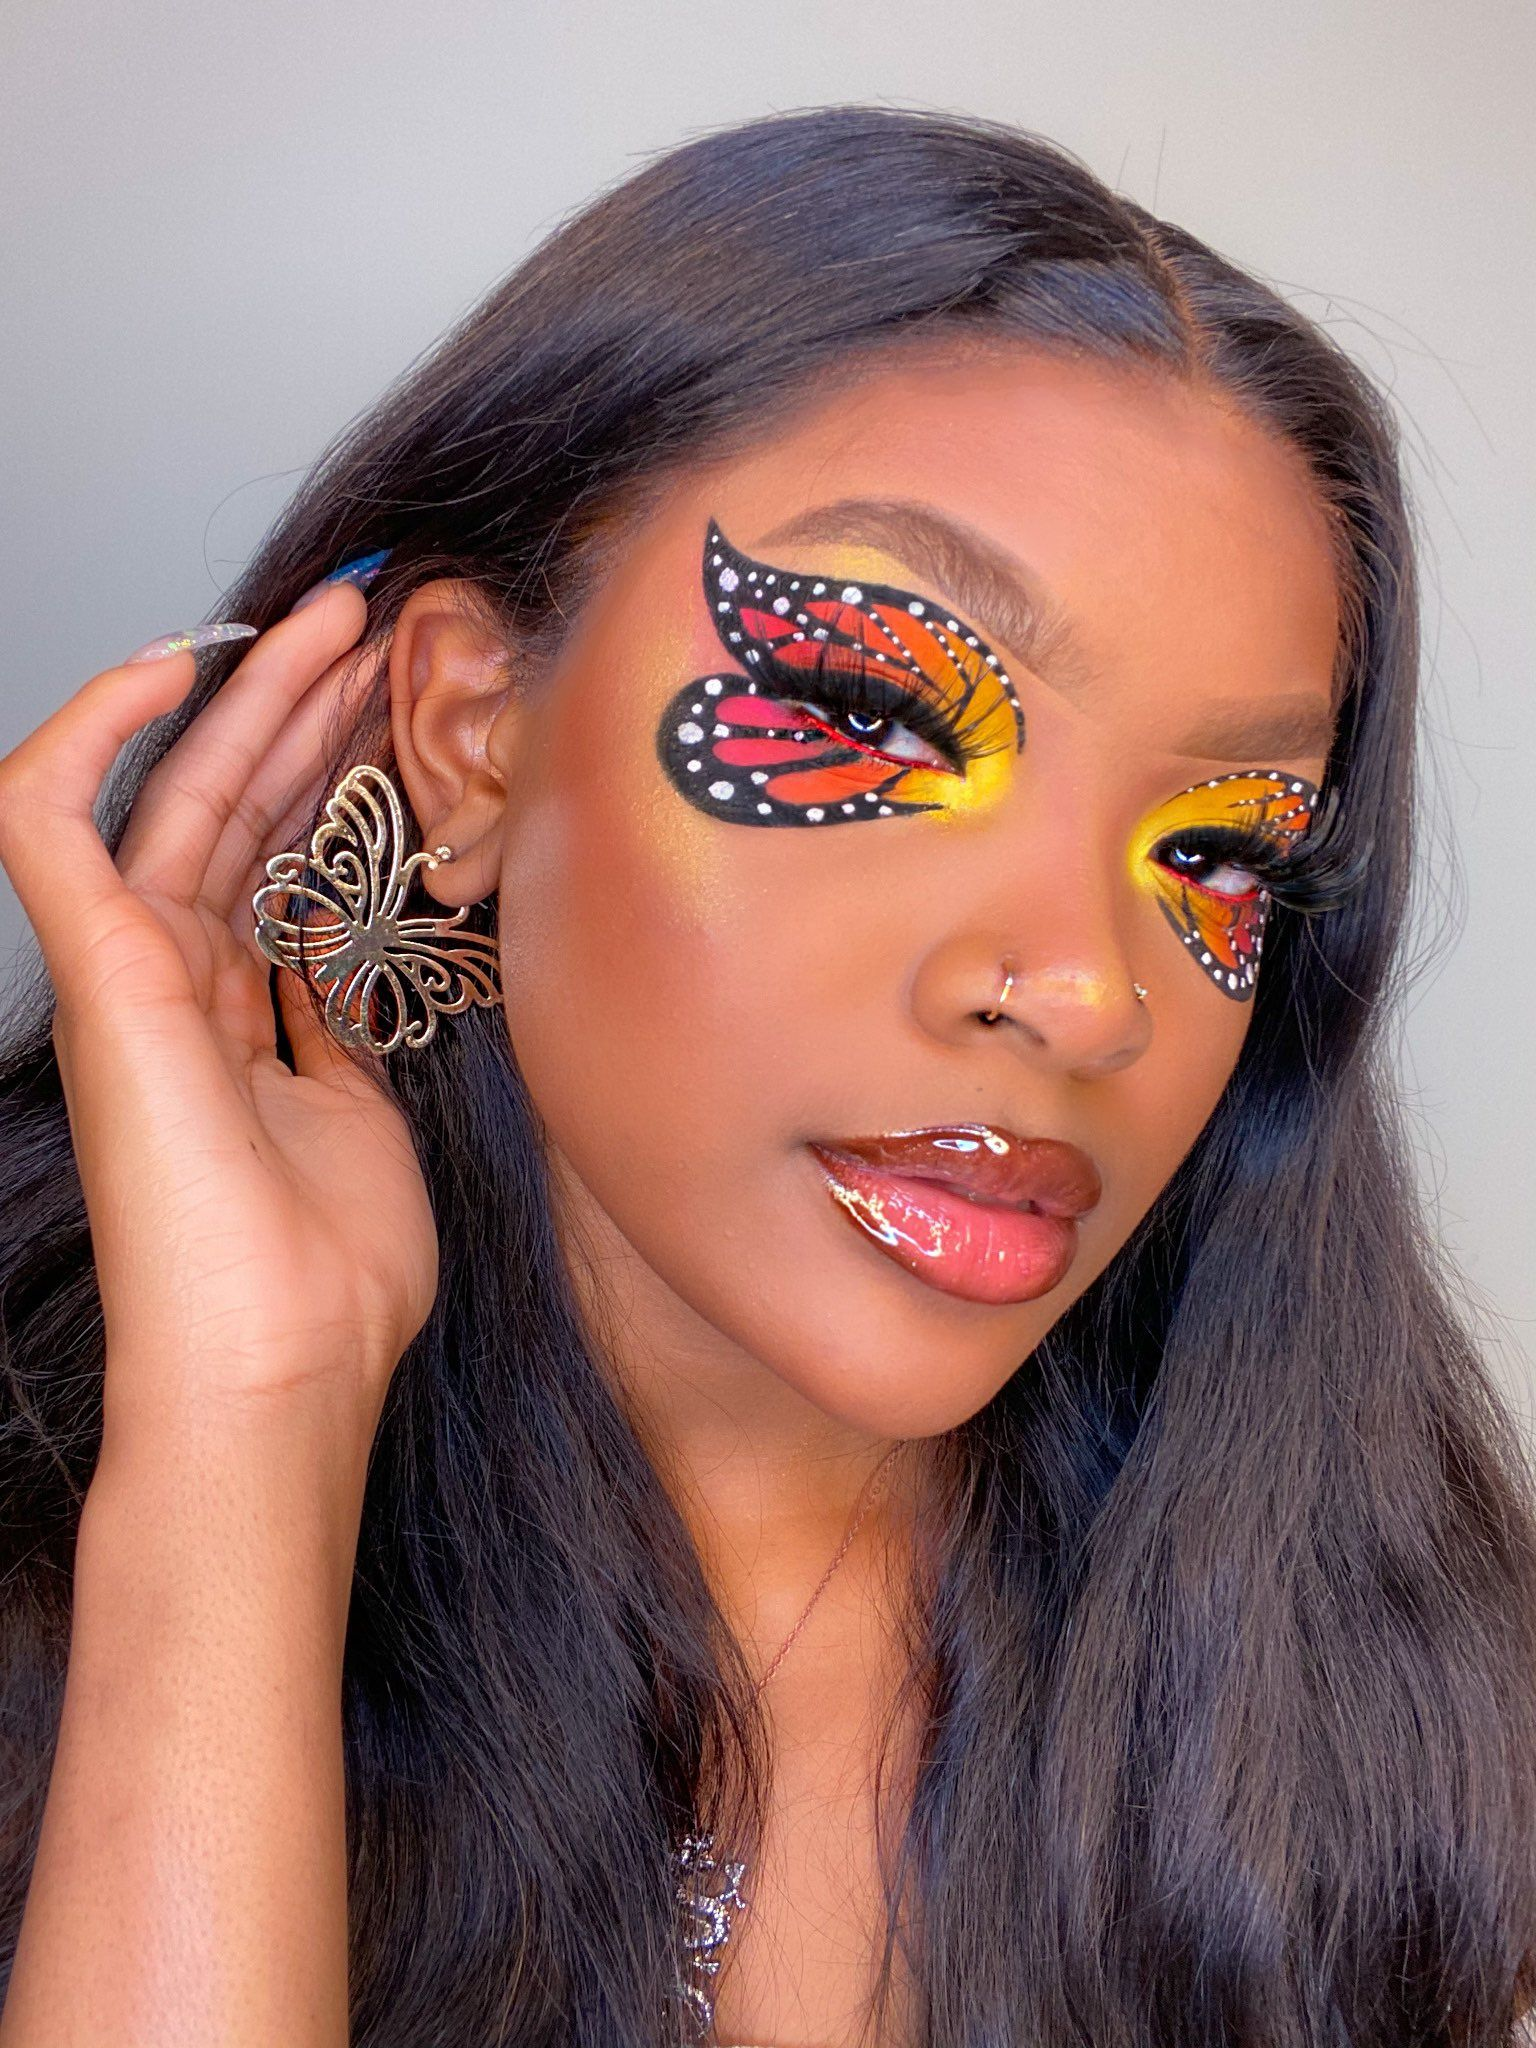 Justice For Breonna Taylor On Twitter In 2020 Make Up Fur Schwarze Madchen Make Up Augen Lidschatten